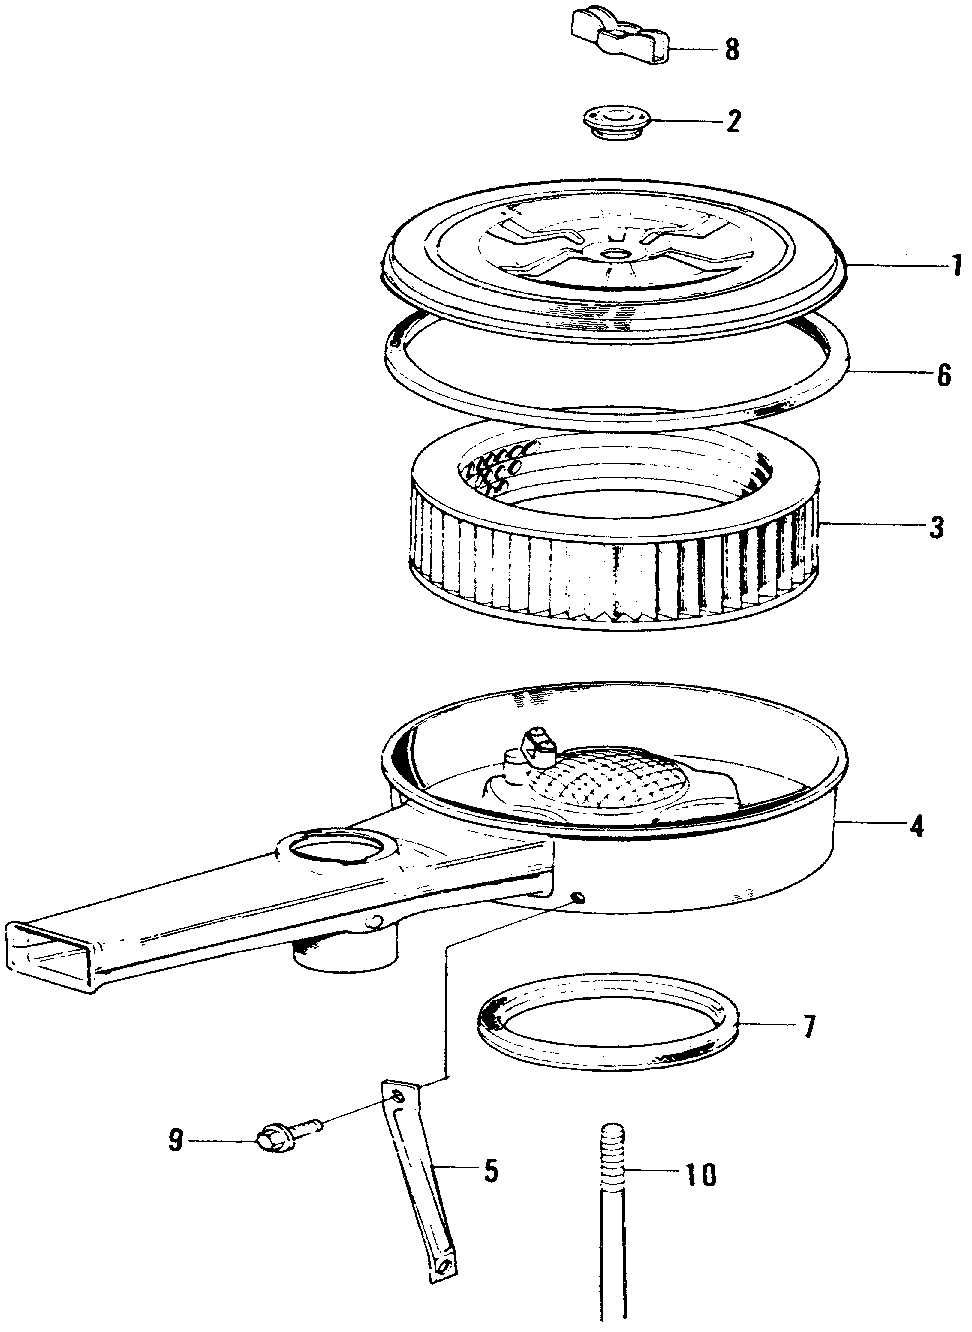 17220-PA1-602 - ELEMENT, AIR CLEANER